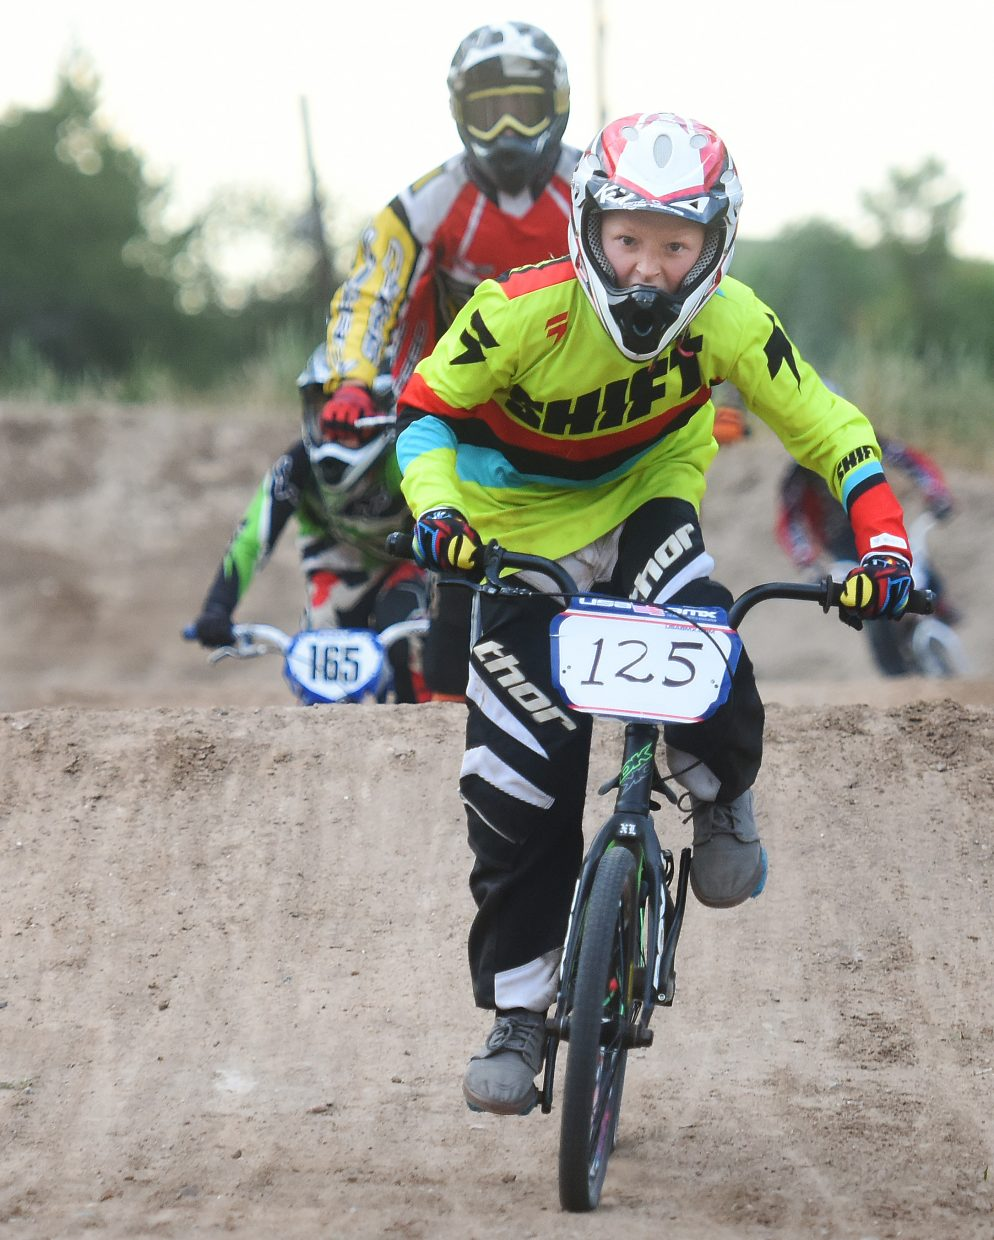 David Schlicht leads the pack Thursday at the Steamboat Springs BMX track.